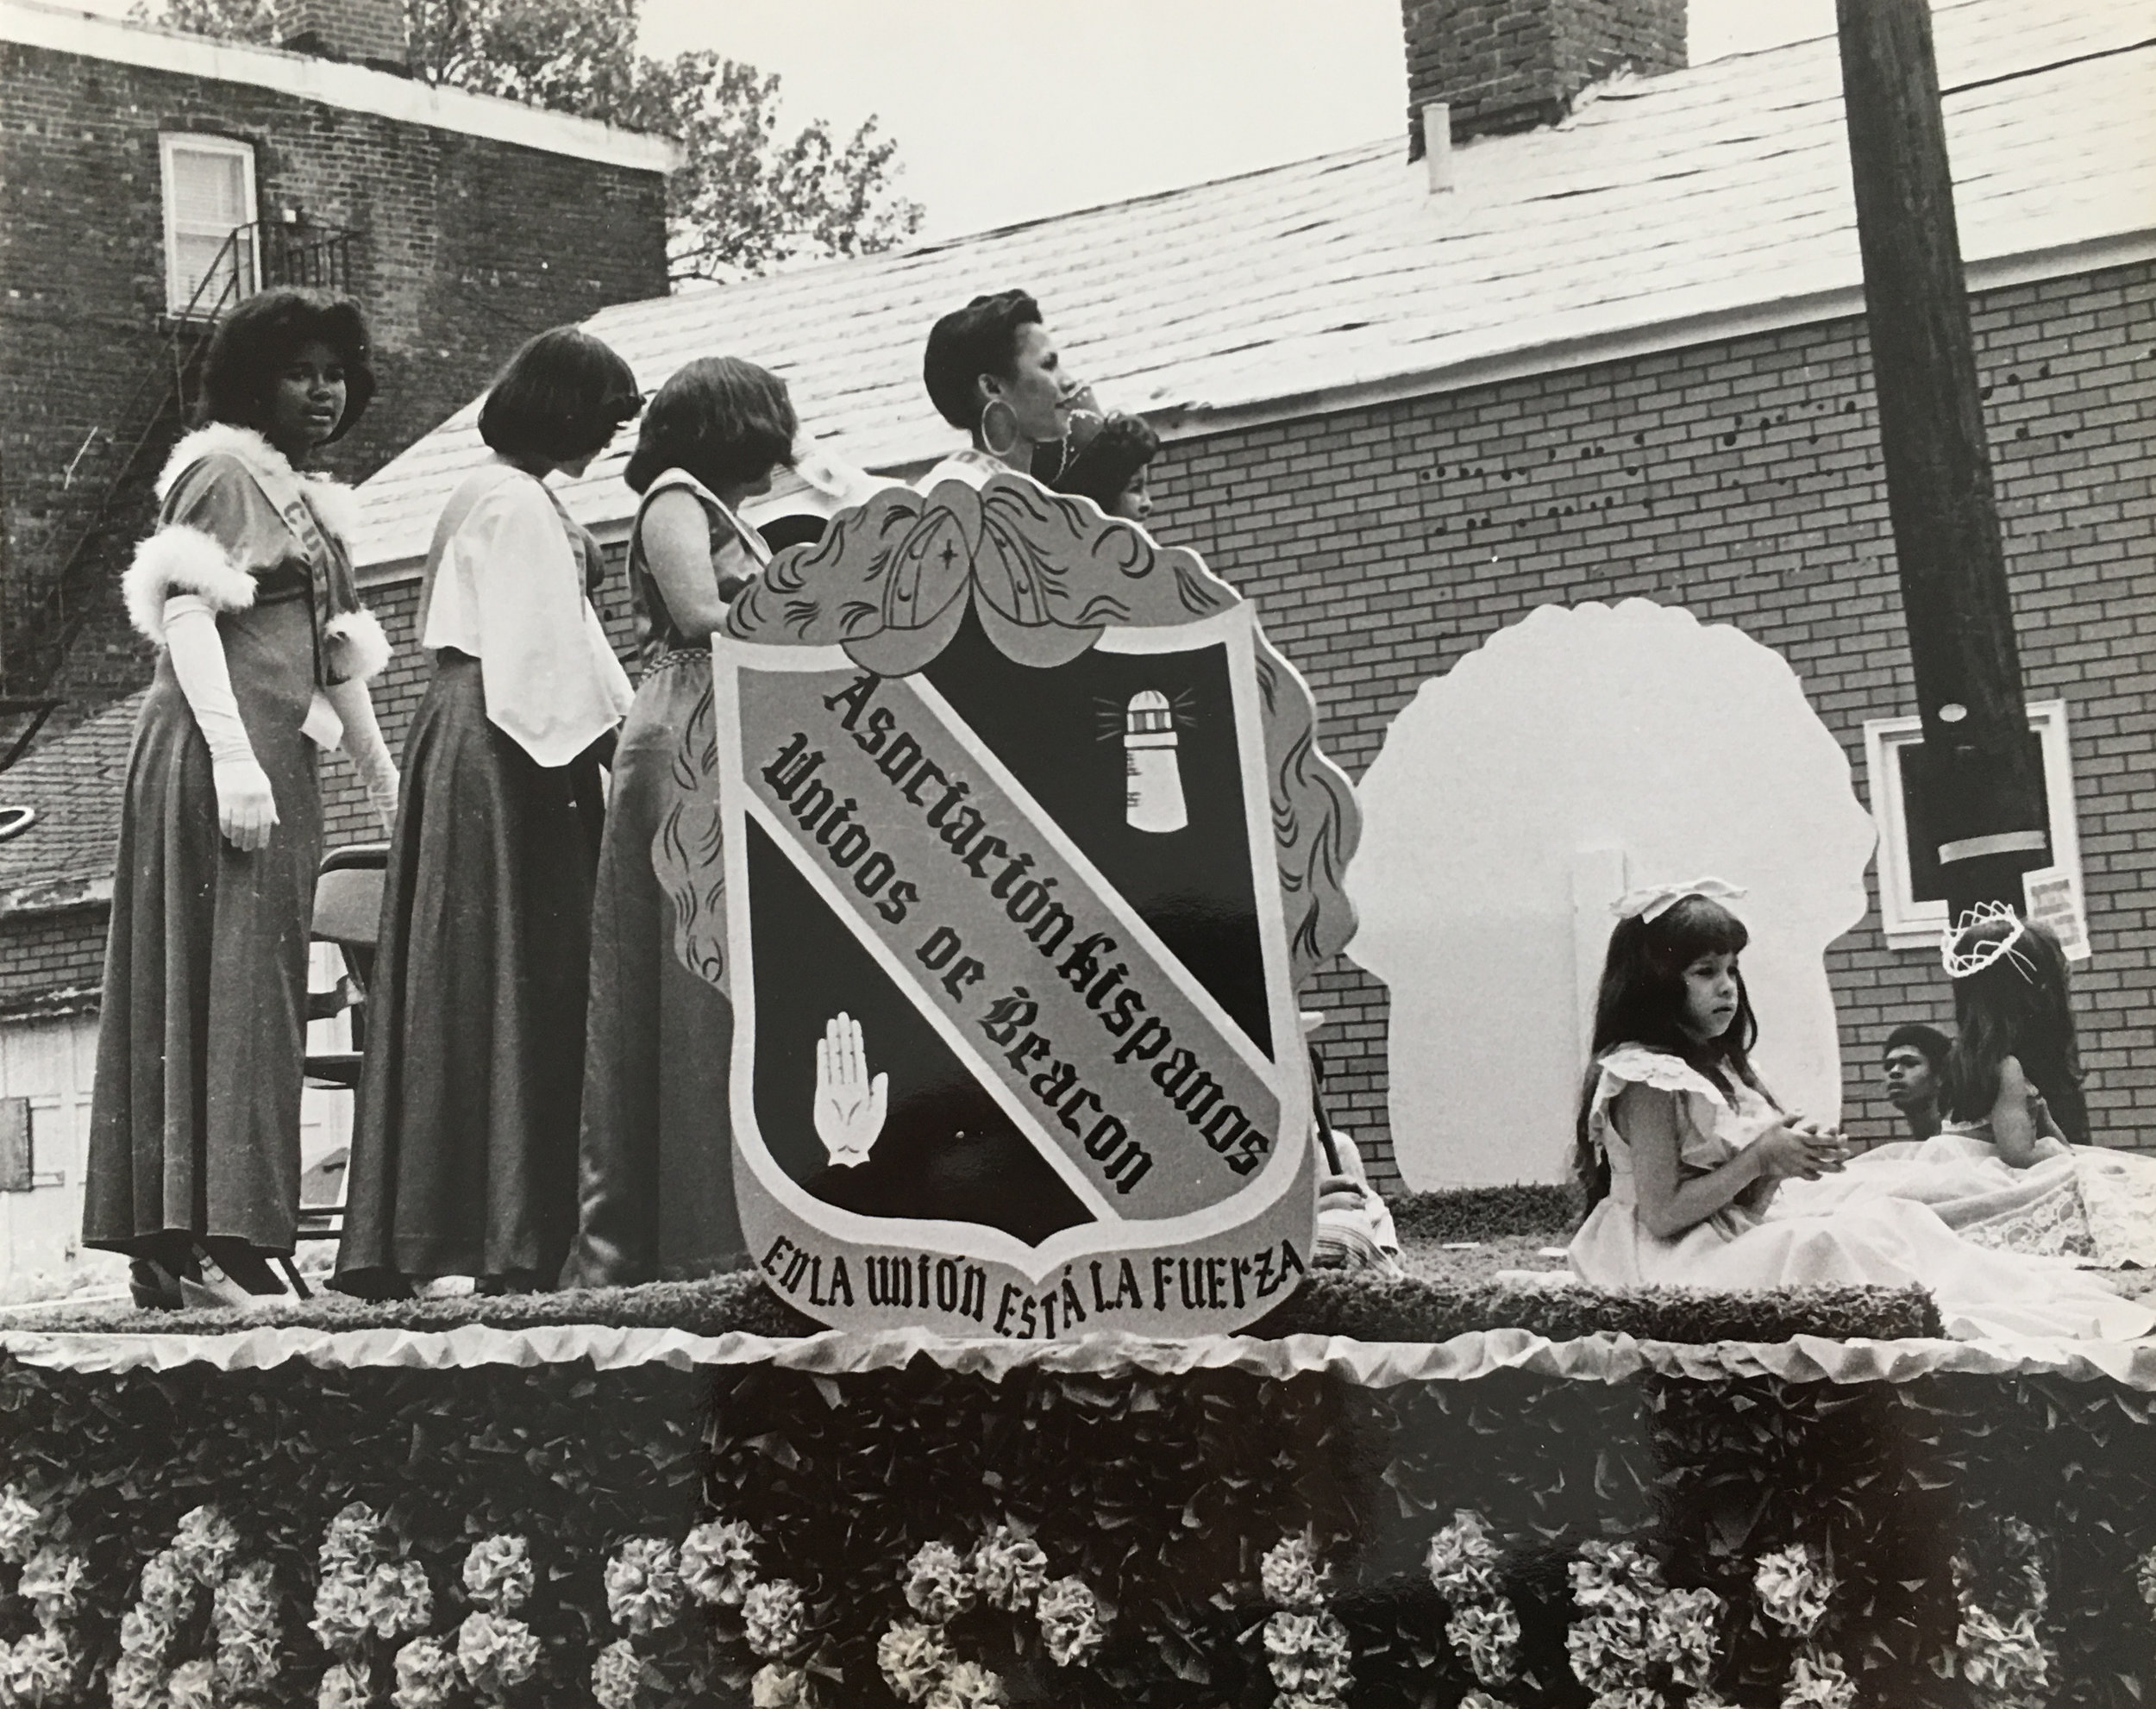 First Spirit of Beacon Parade 1977, courtesy of the Beacon Historical Society